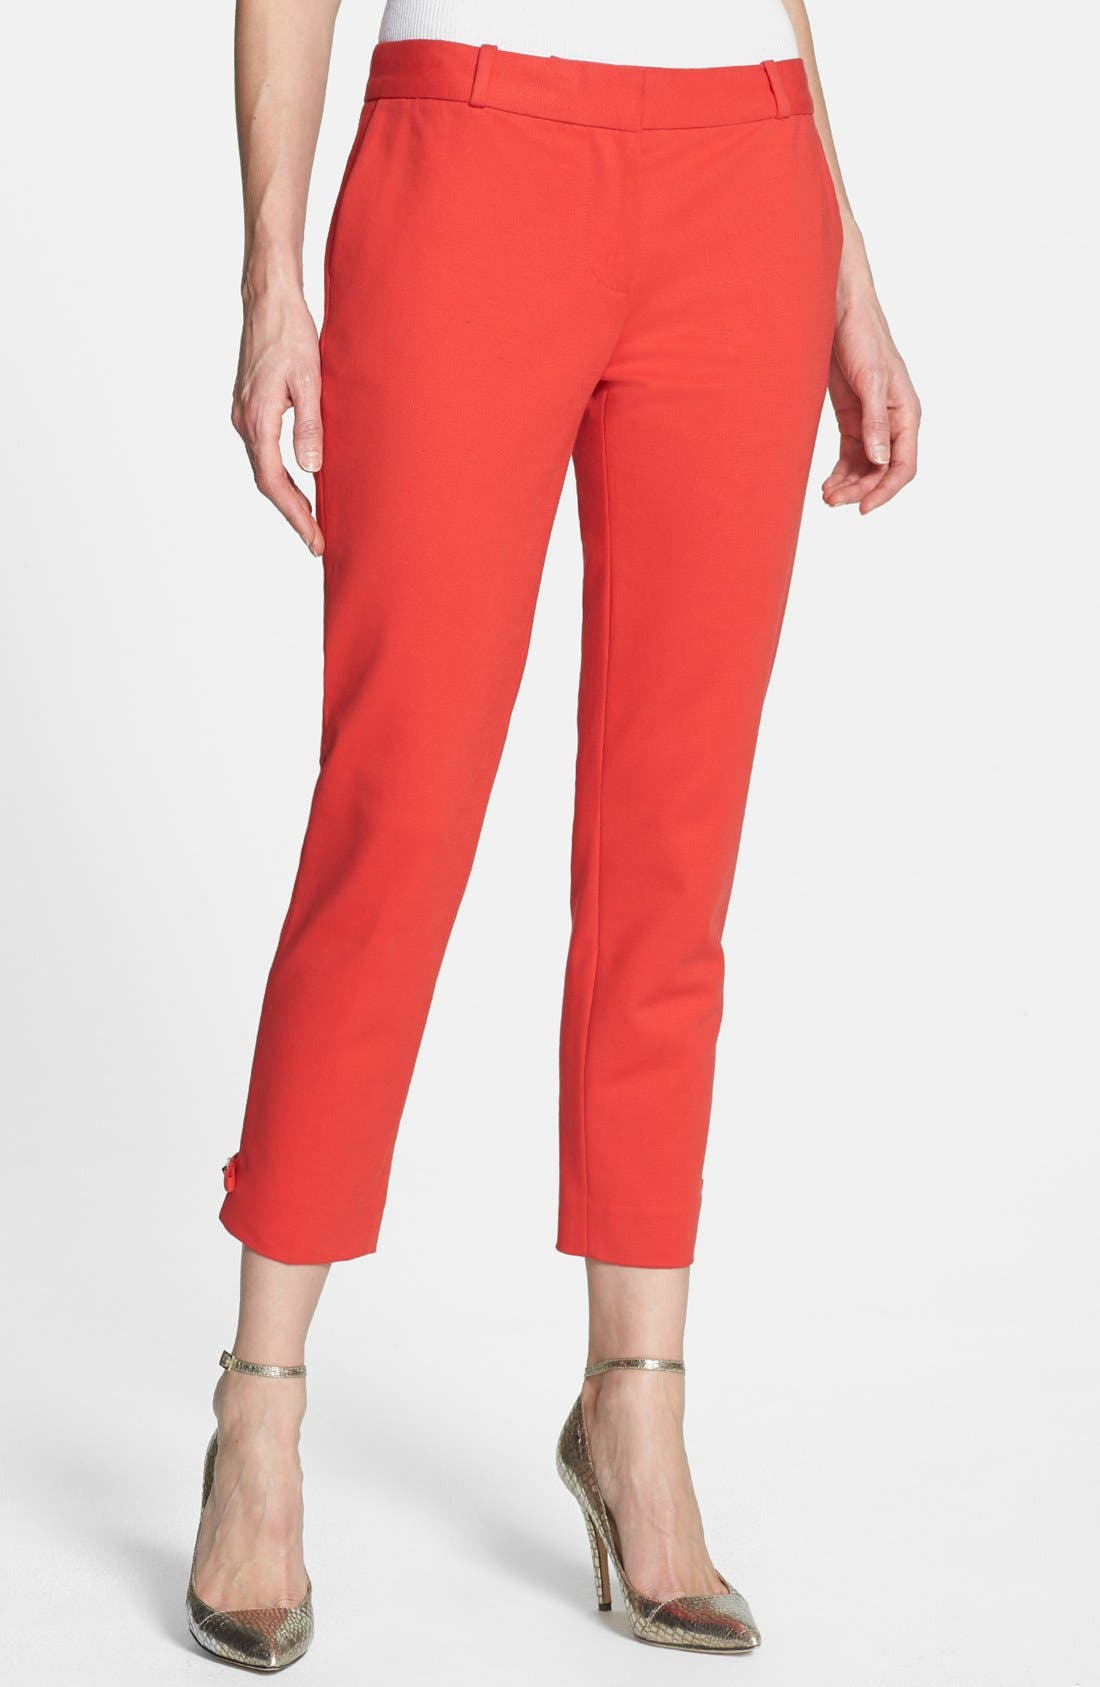 Main Image - kate spade new york 'jackie' stretch cotton capri pants